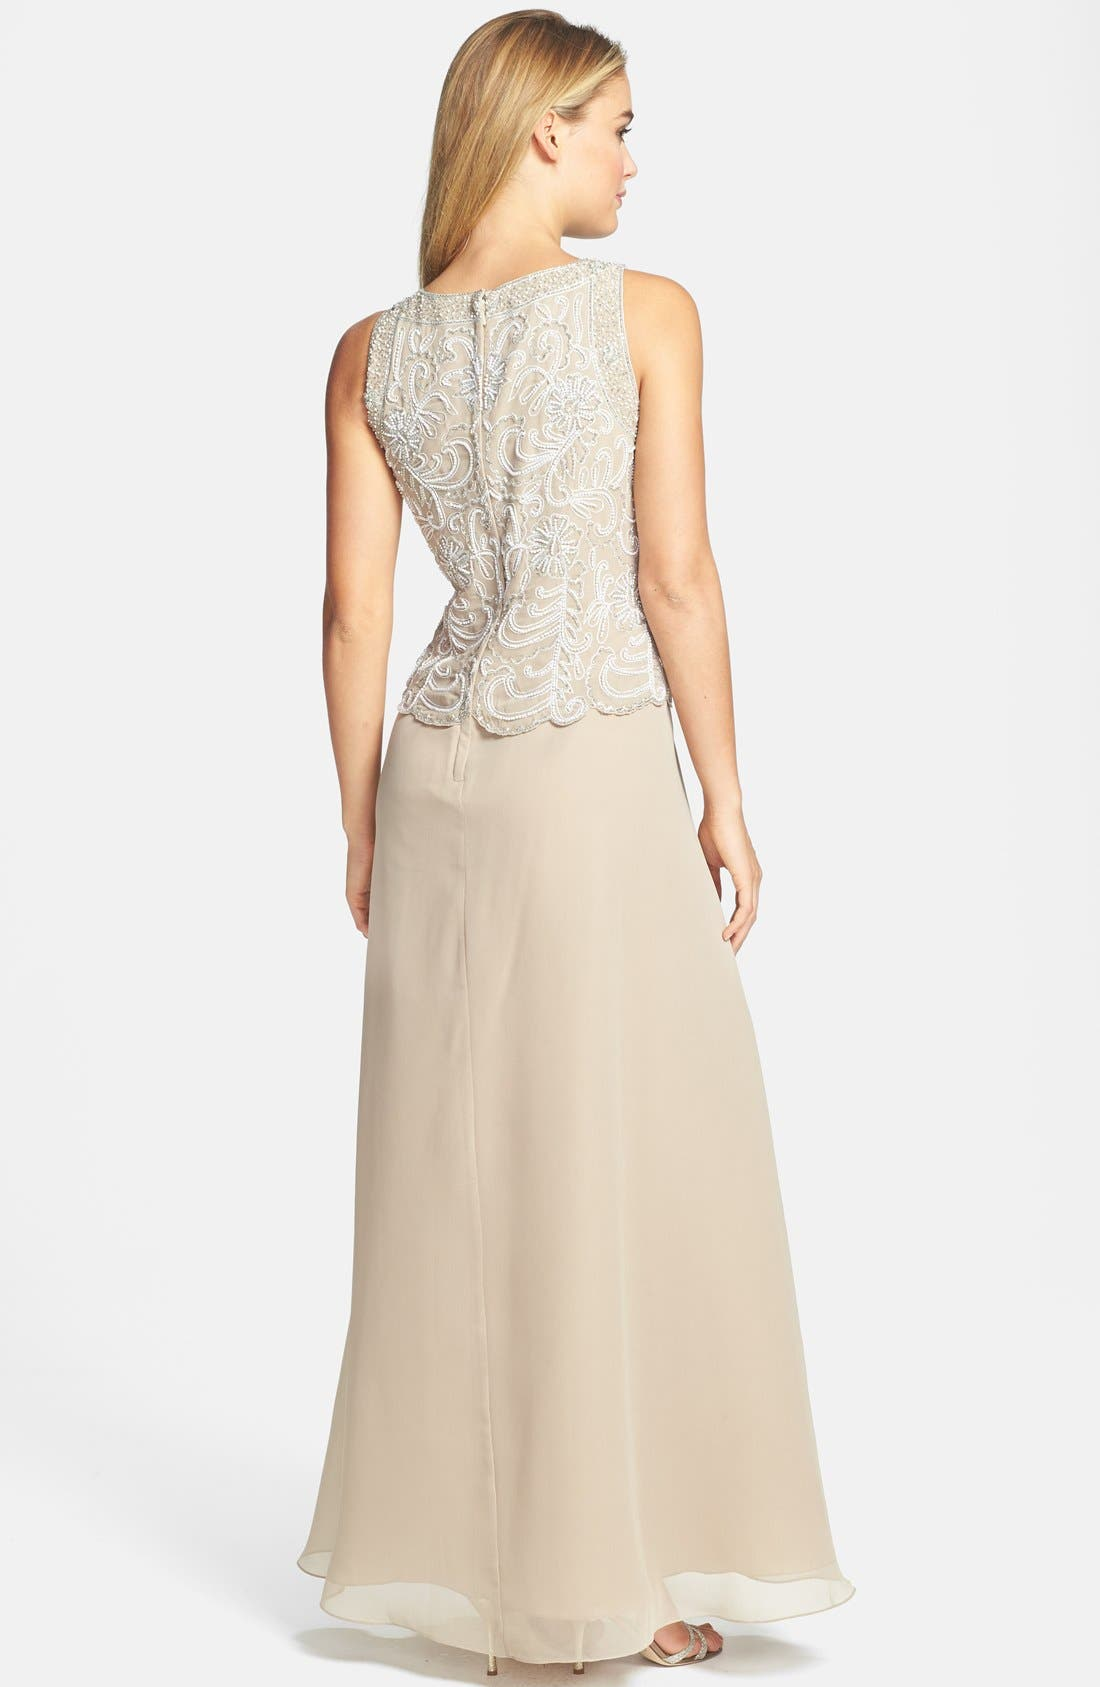 J KARA,                             Embellished Chiffon A-Line Gown with Shawl,                             Alternate thumbnail 2, color,                             250